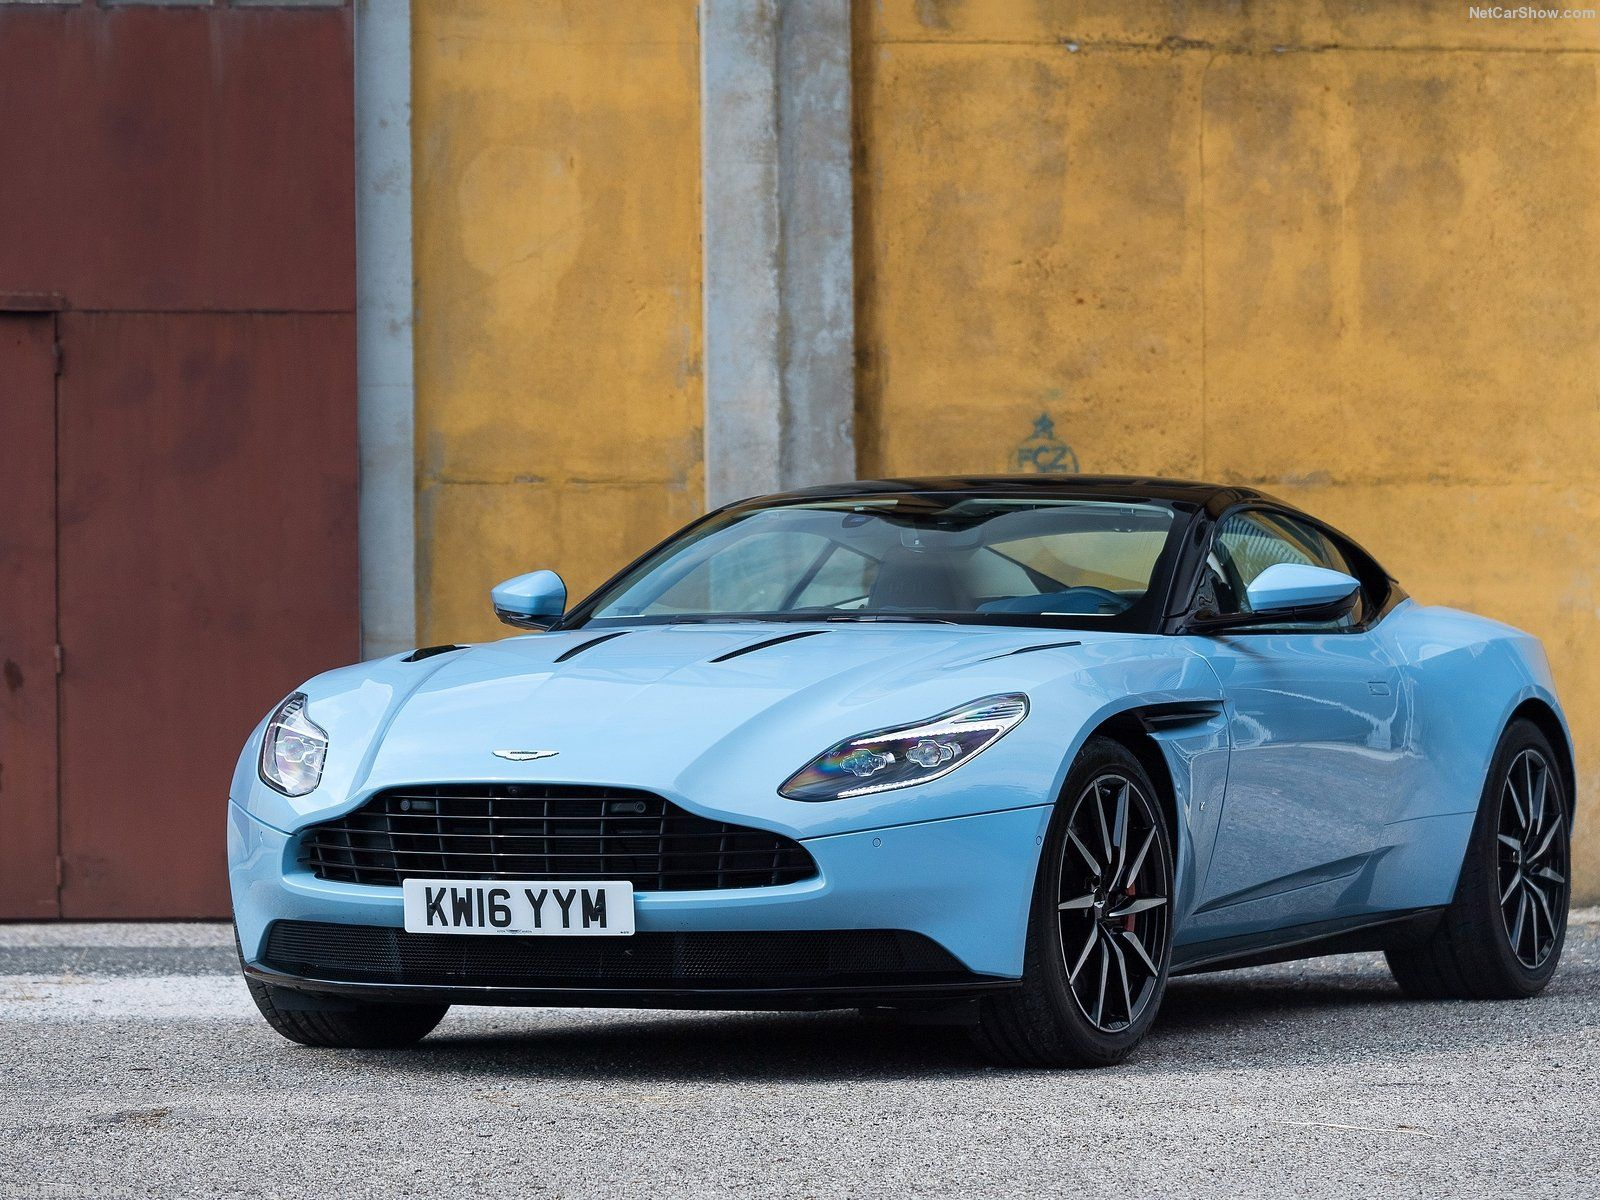 2017 aston martin db11 frosted glass blue | cars & motorcycles